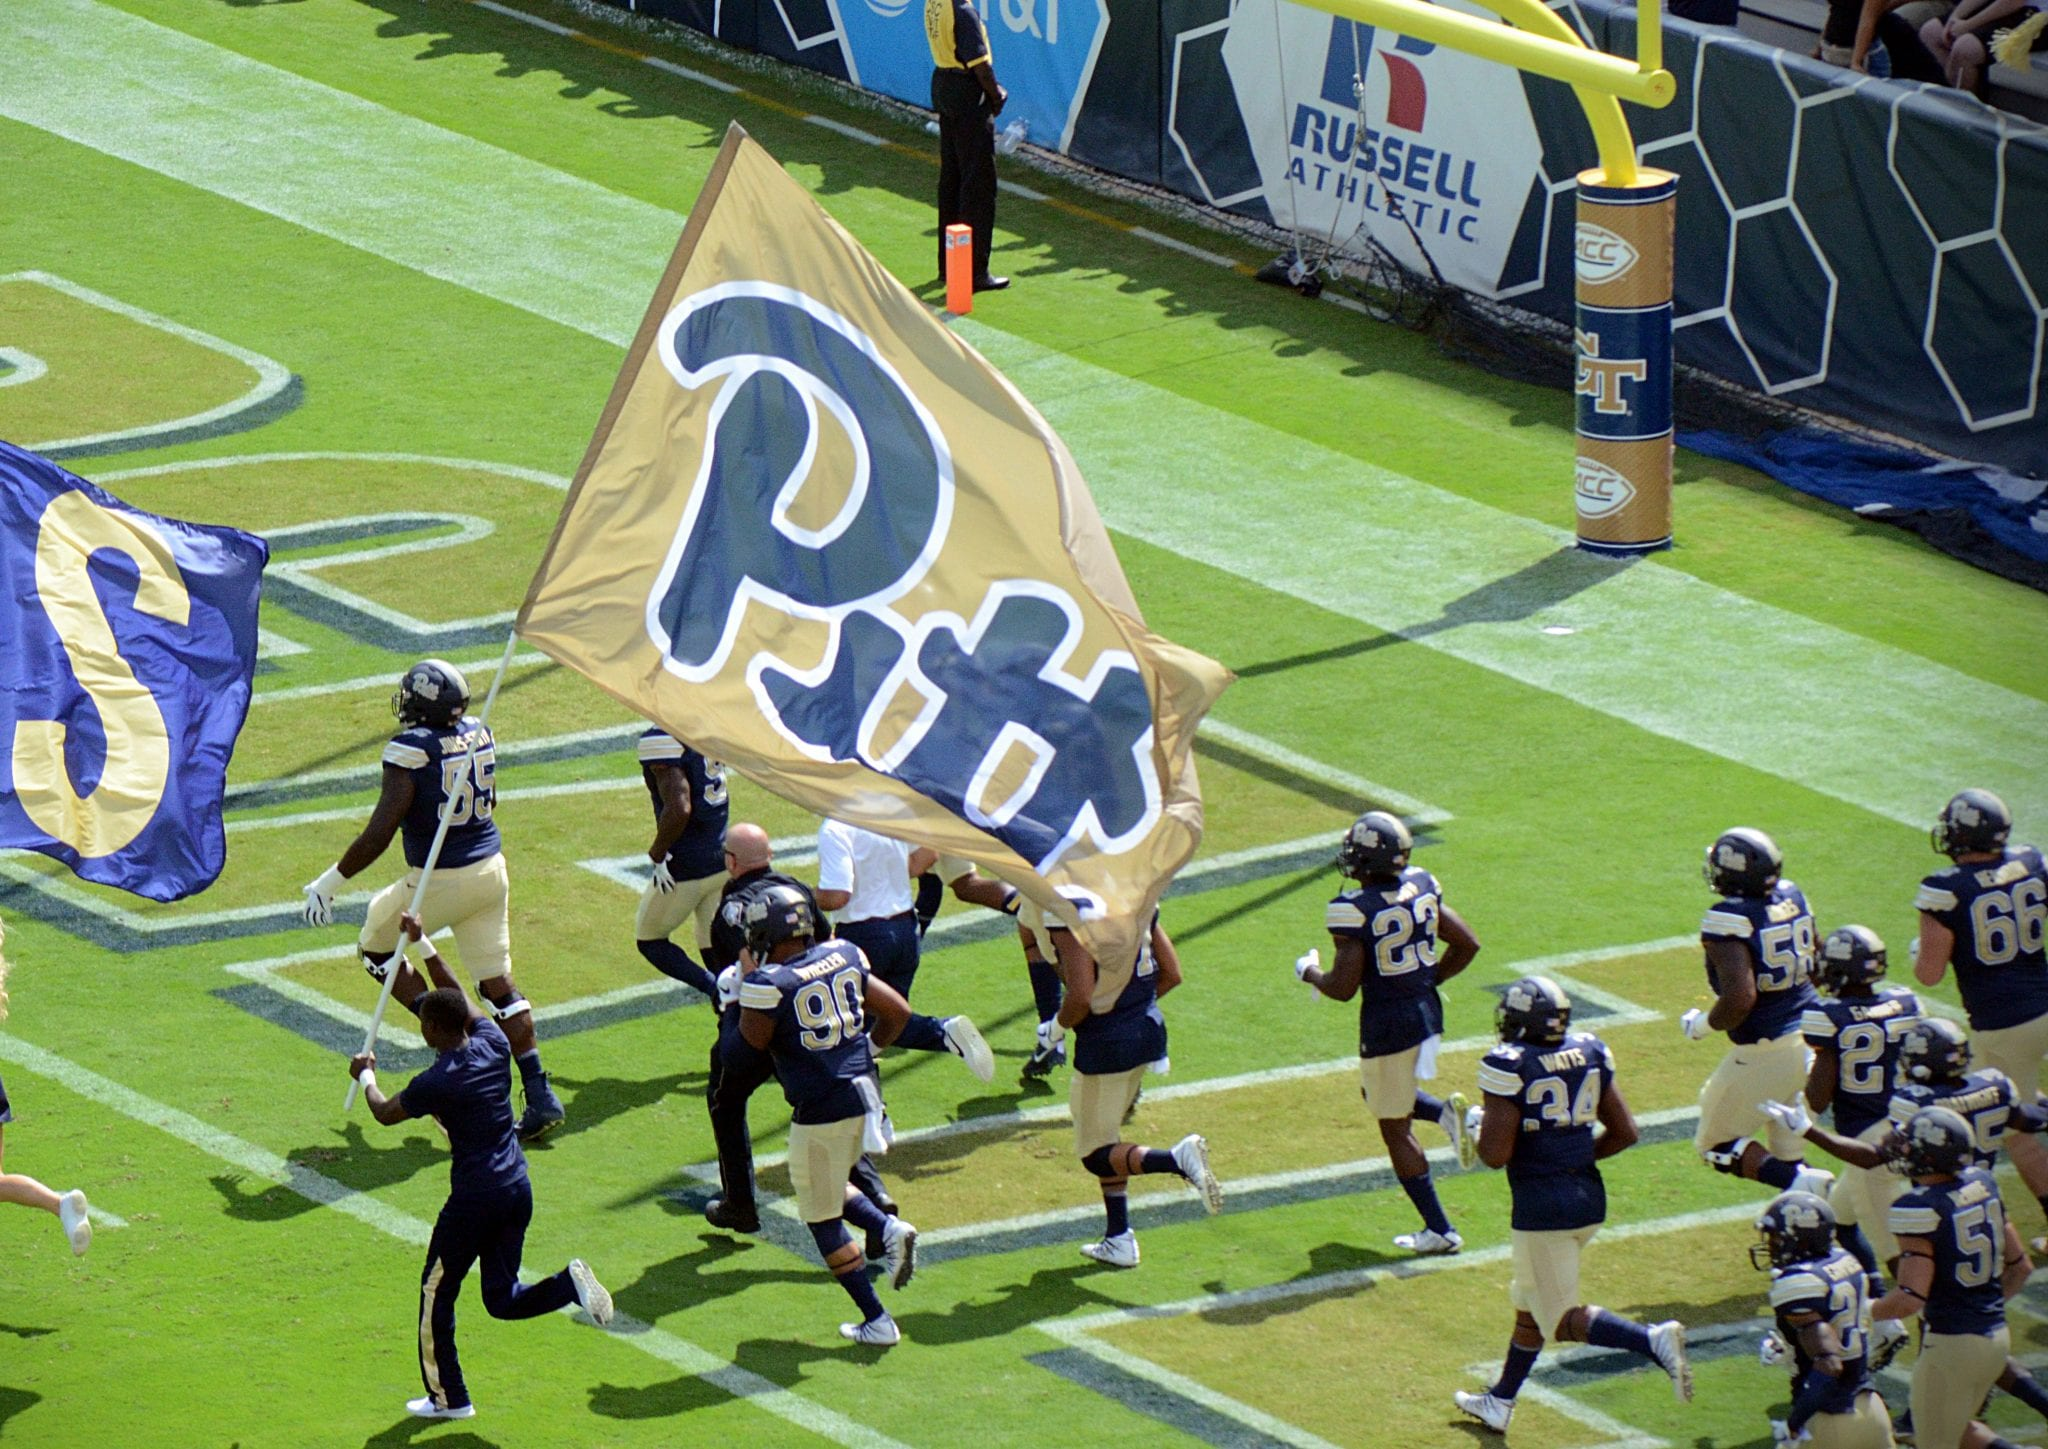 Pitt takes the field in Atlanta. -- MITCHELL NORTHAM